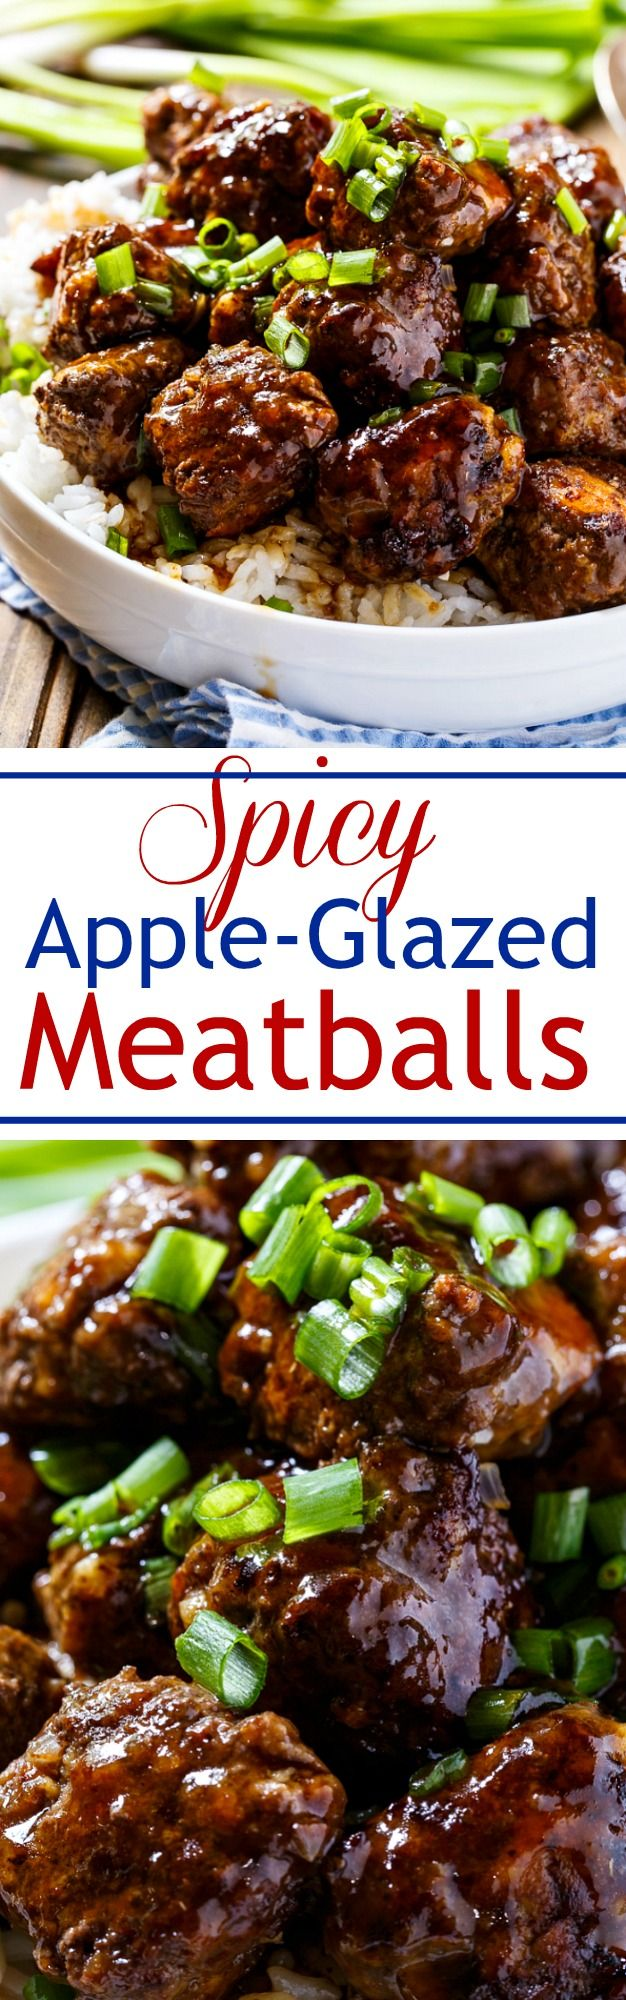 1000+ ideas about Spicy Meatballs on Pinterest | Spicy, Meatball ...